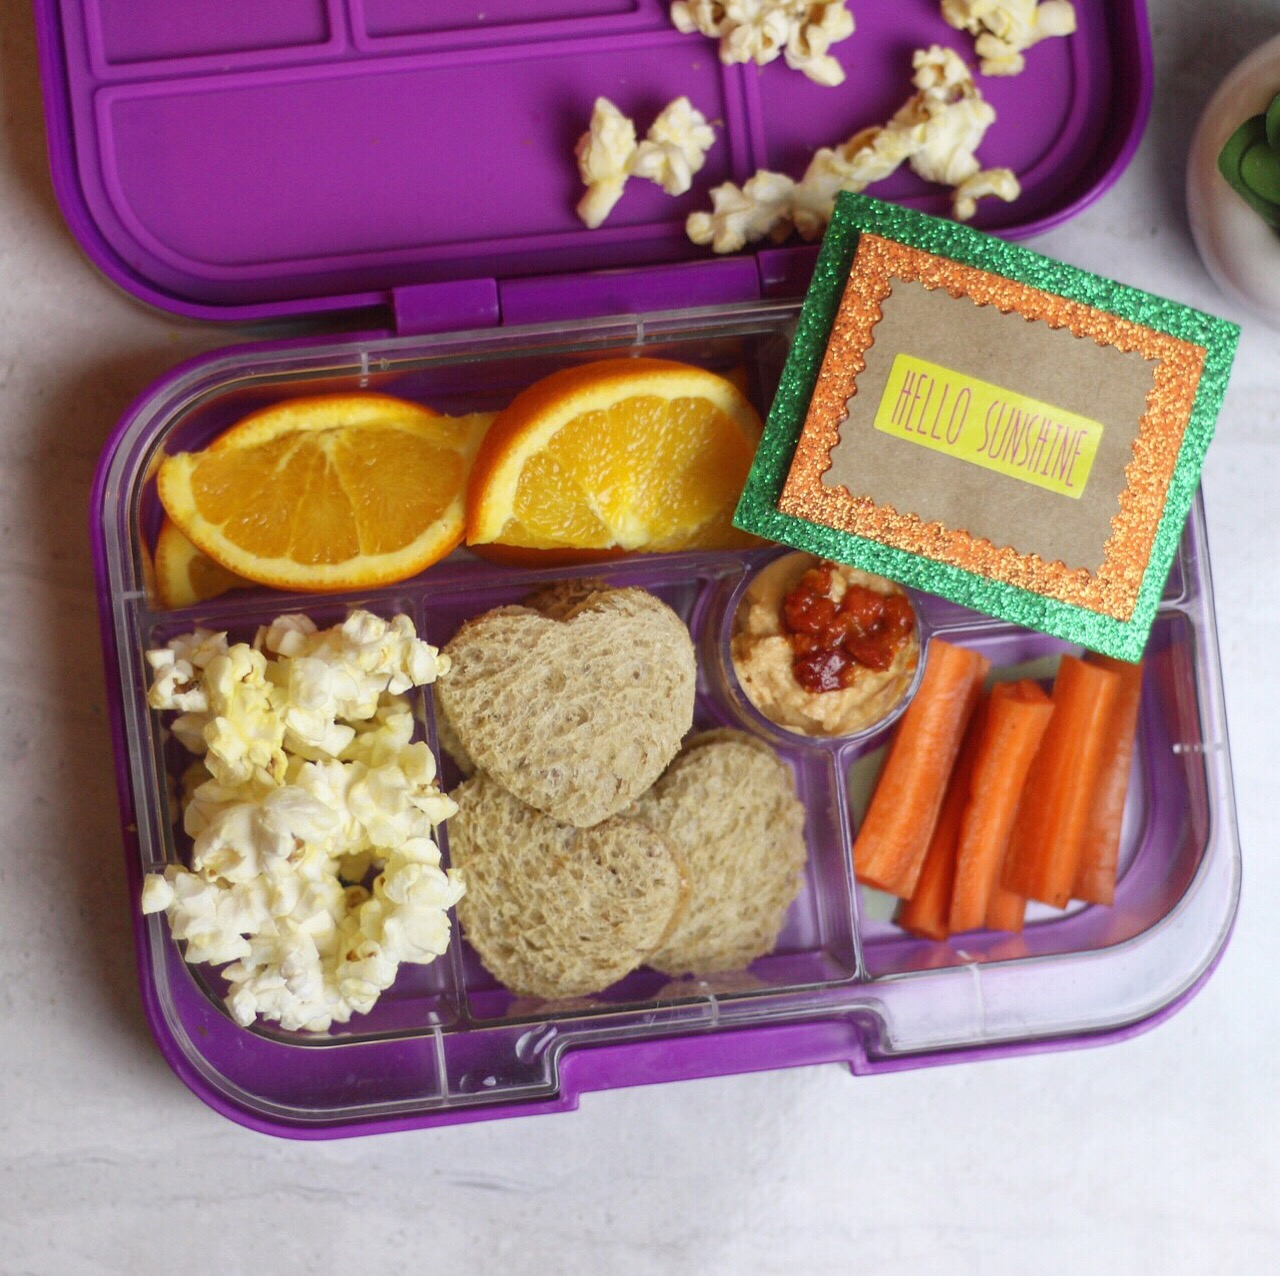 simple yet satisfying! - PB and jam sandwiches, carrots and hummus, oranges, and popcorn!